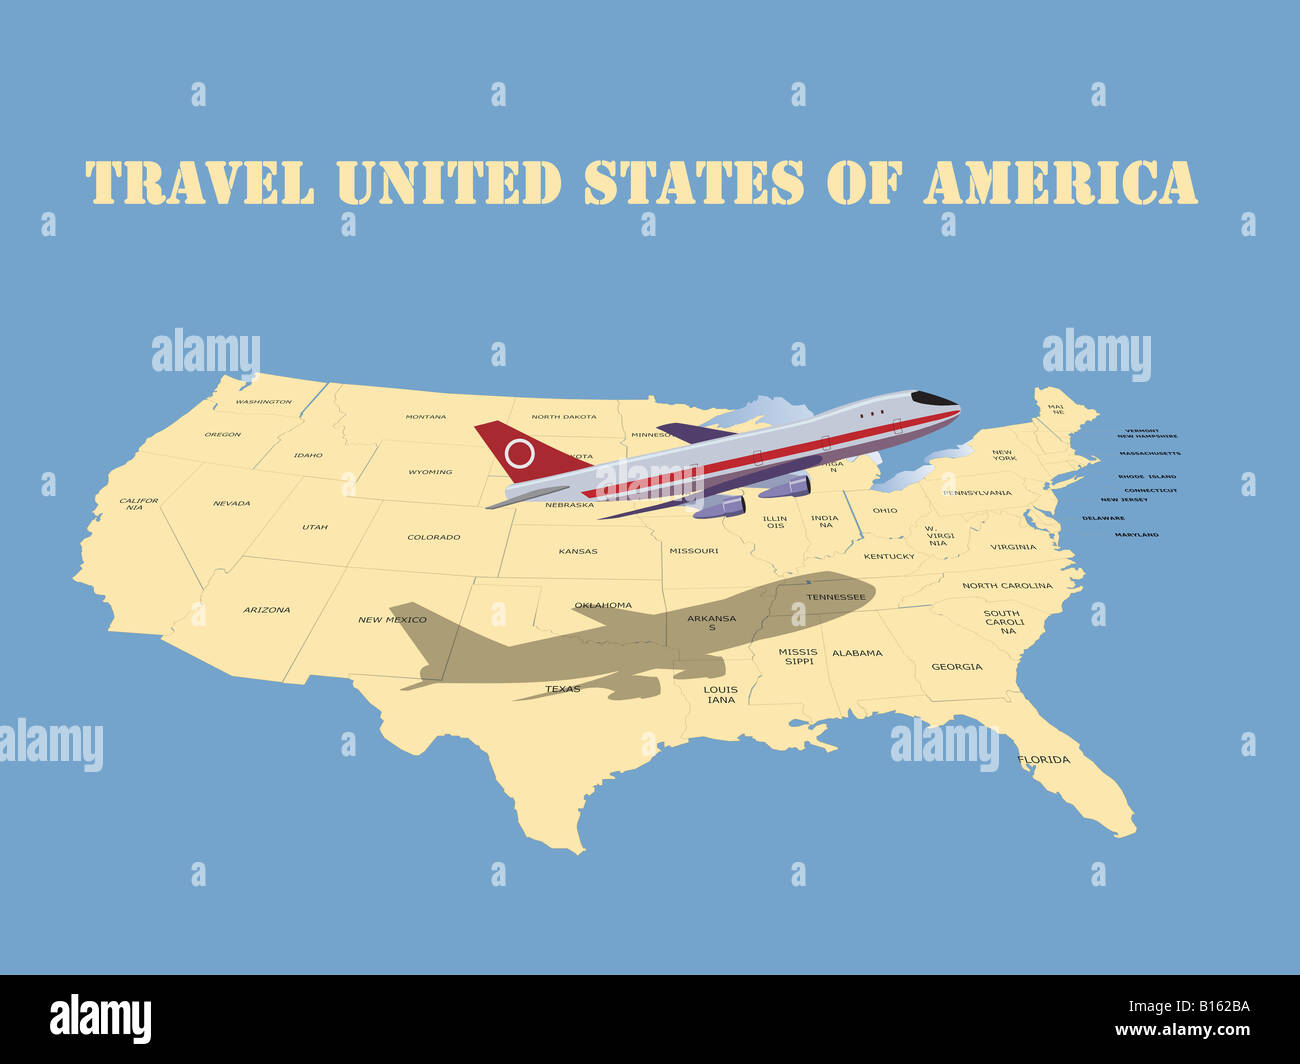 Map Of Planes In Air Over Us Travel United States of America: a passenger plane over the USA